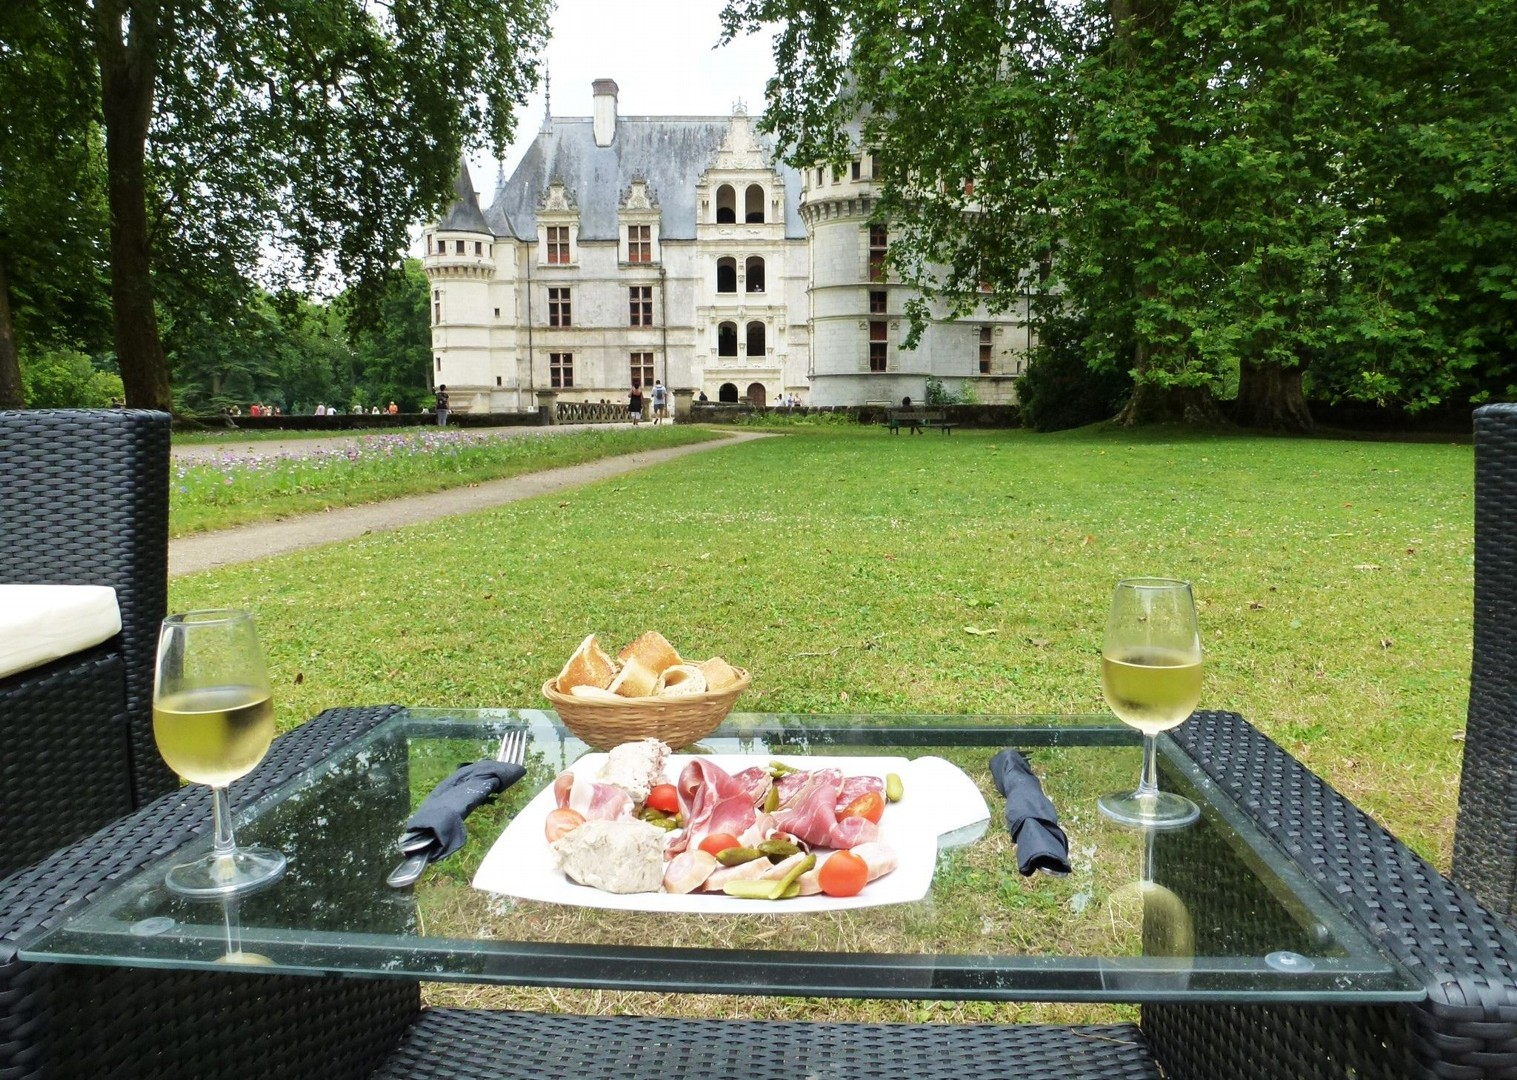 al-fresco-dining-france-holiday.jpg - France - Chateaux of the Loire - Self-Guided Leisure Cycling Holiday - Leisure Cycling